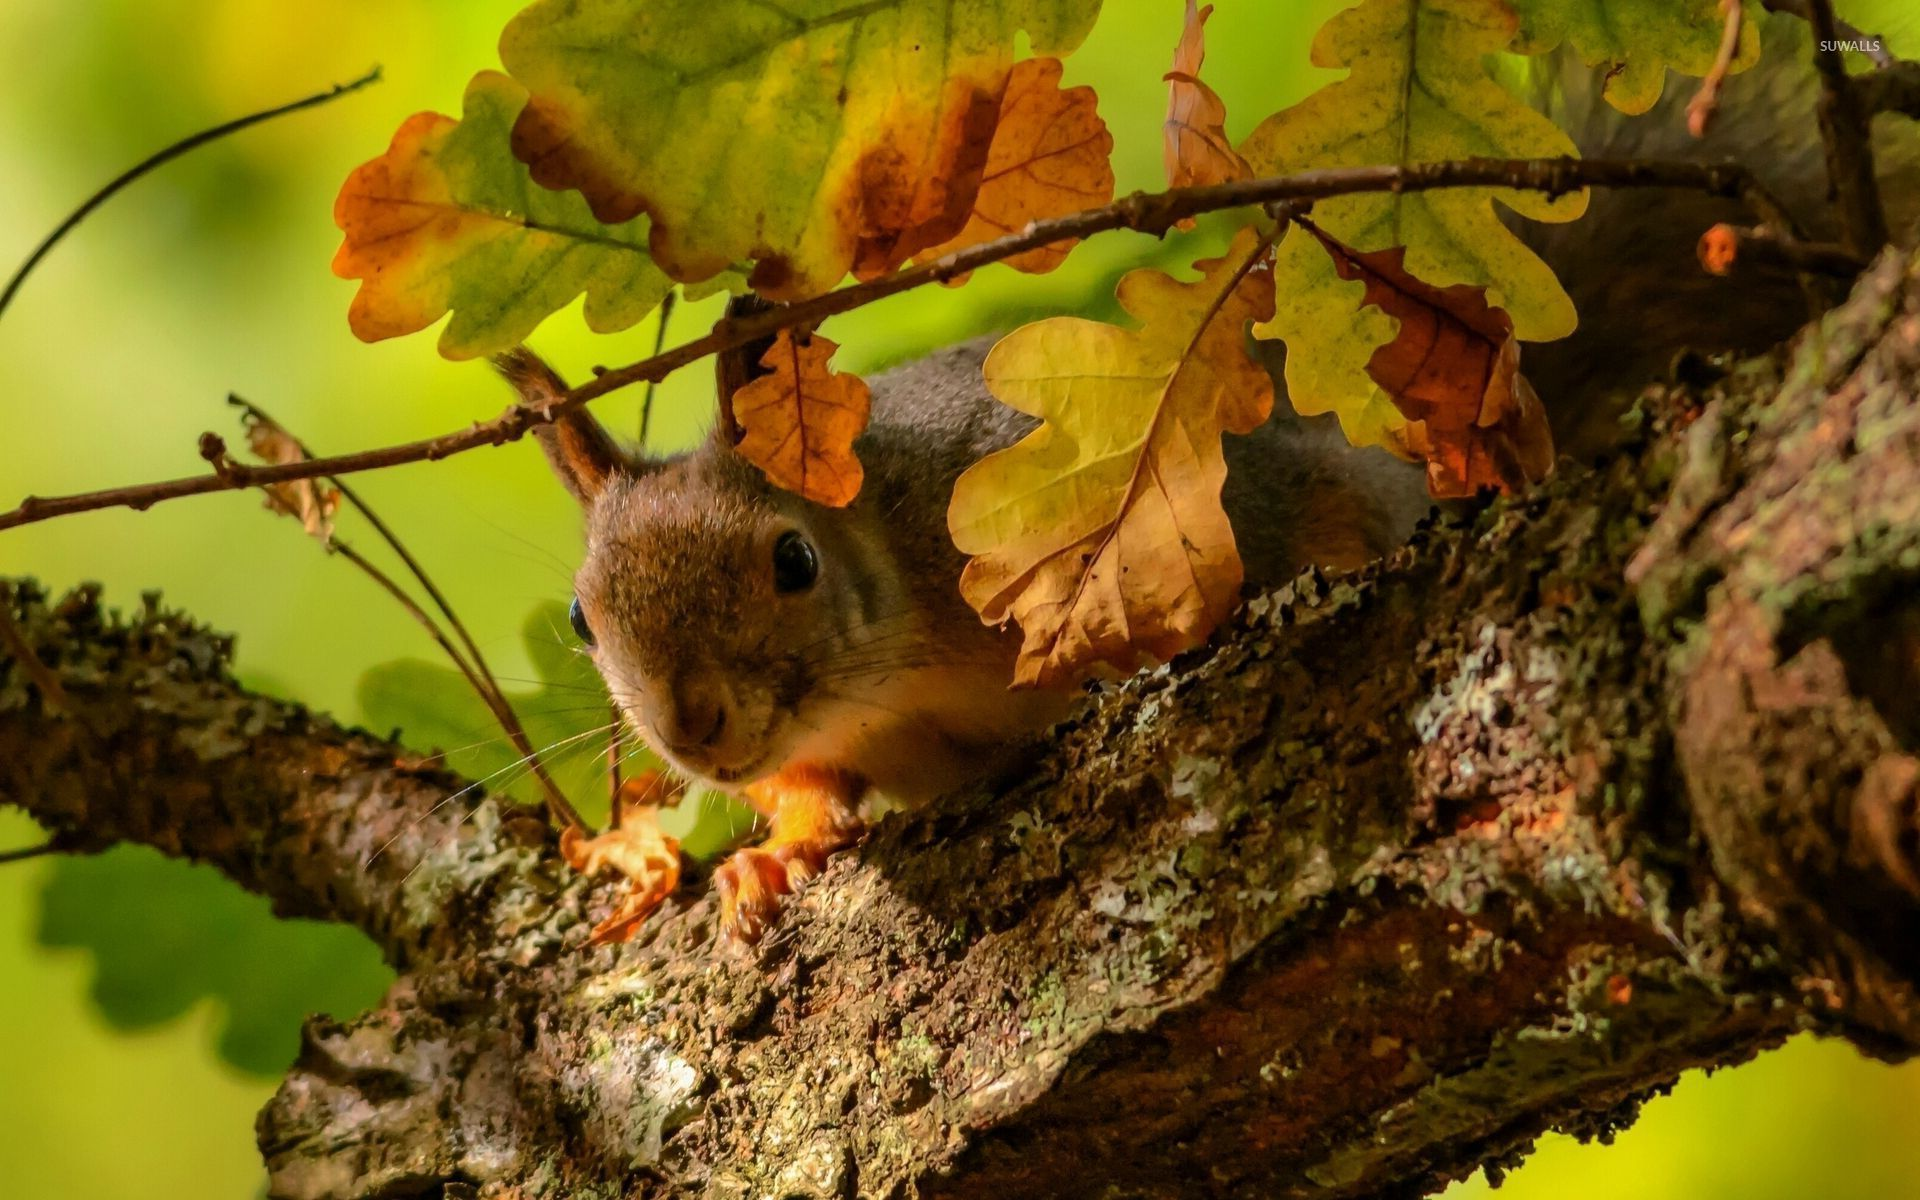 Squirrel on the oak tree wallpaper   Animal wallpapers   27553 1920x1200